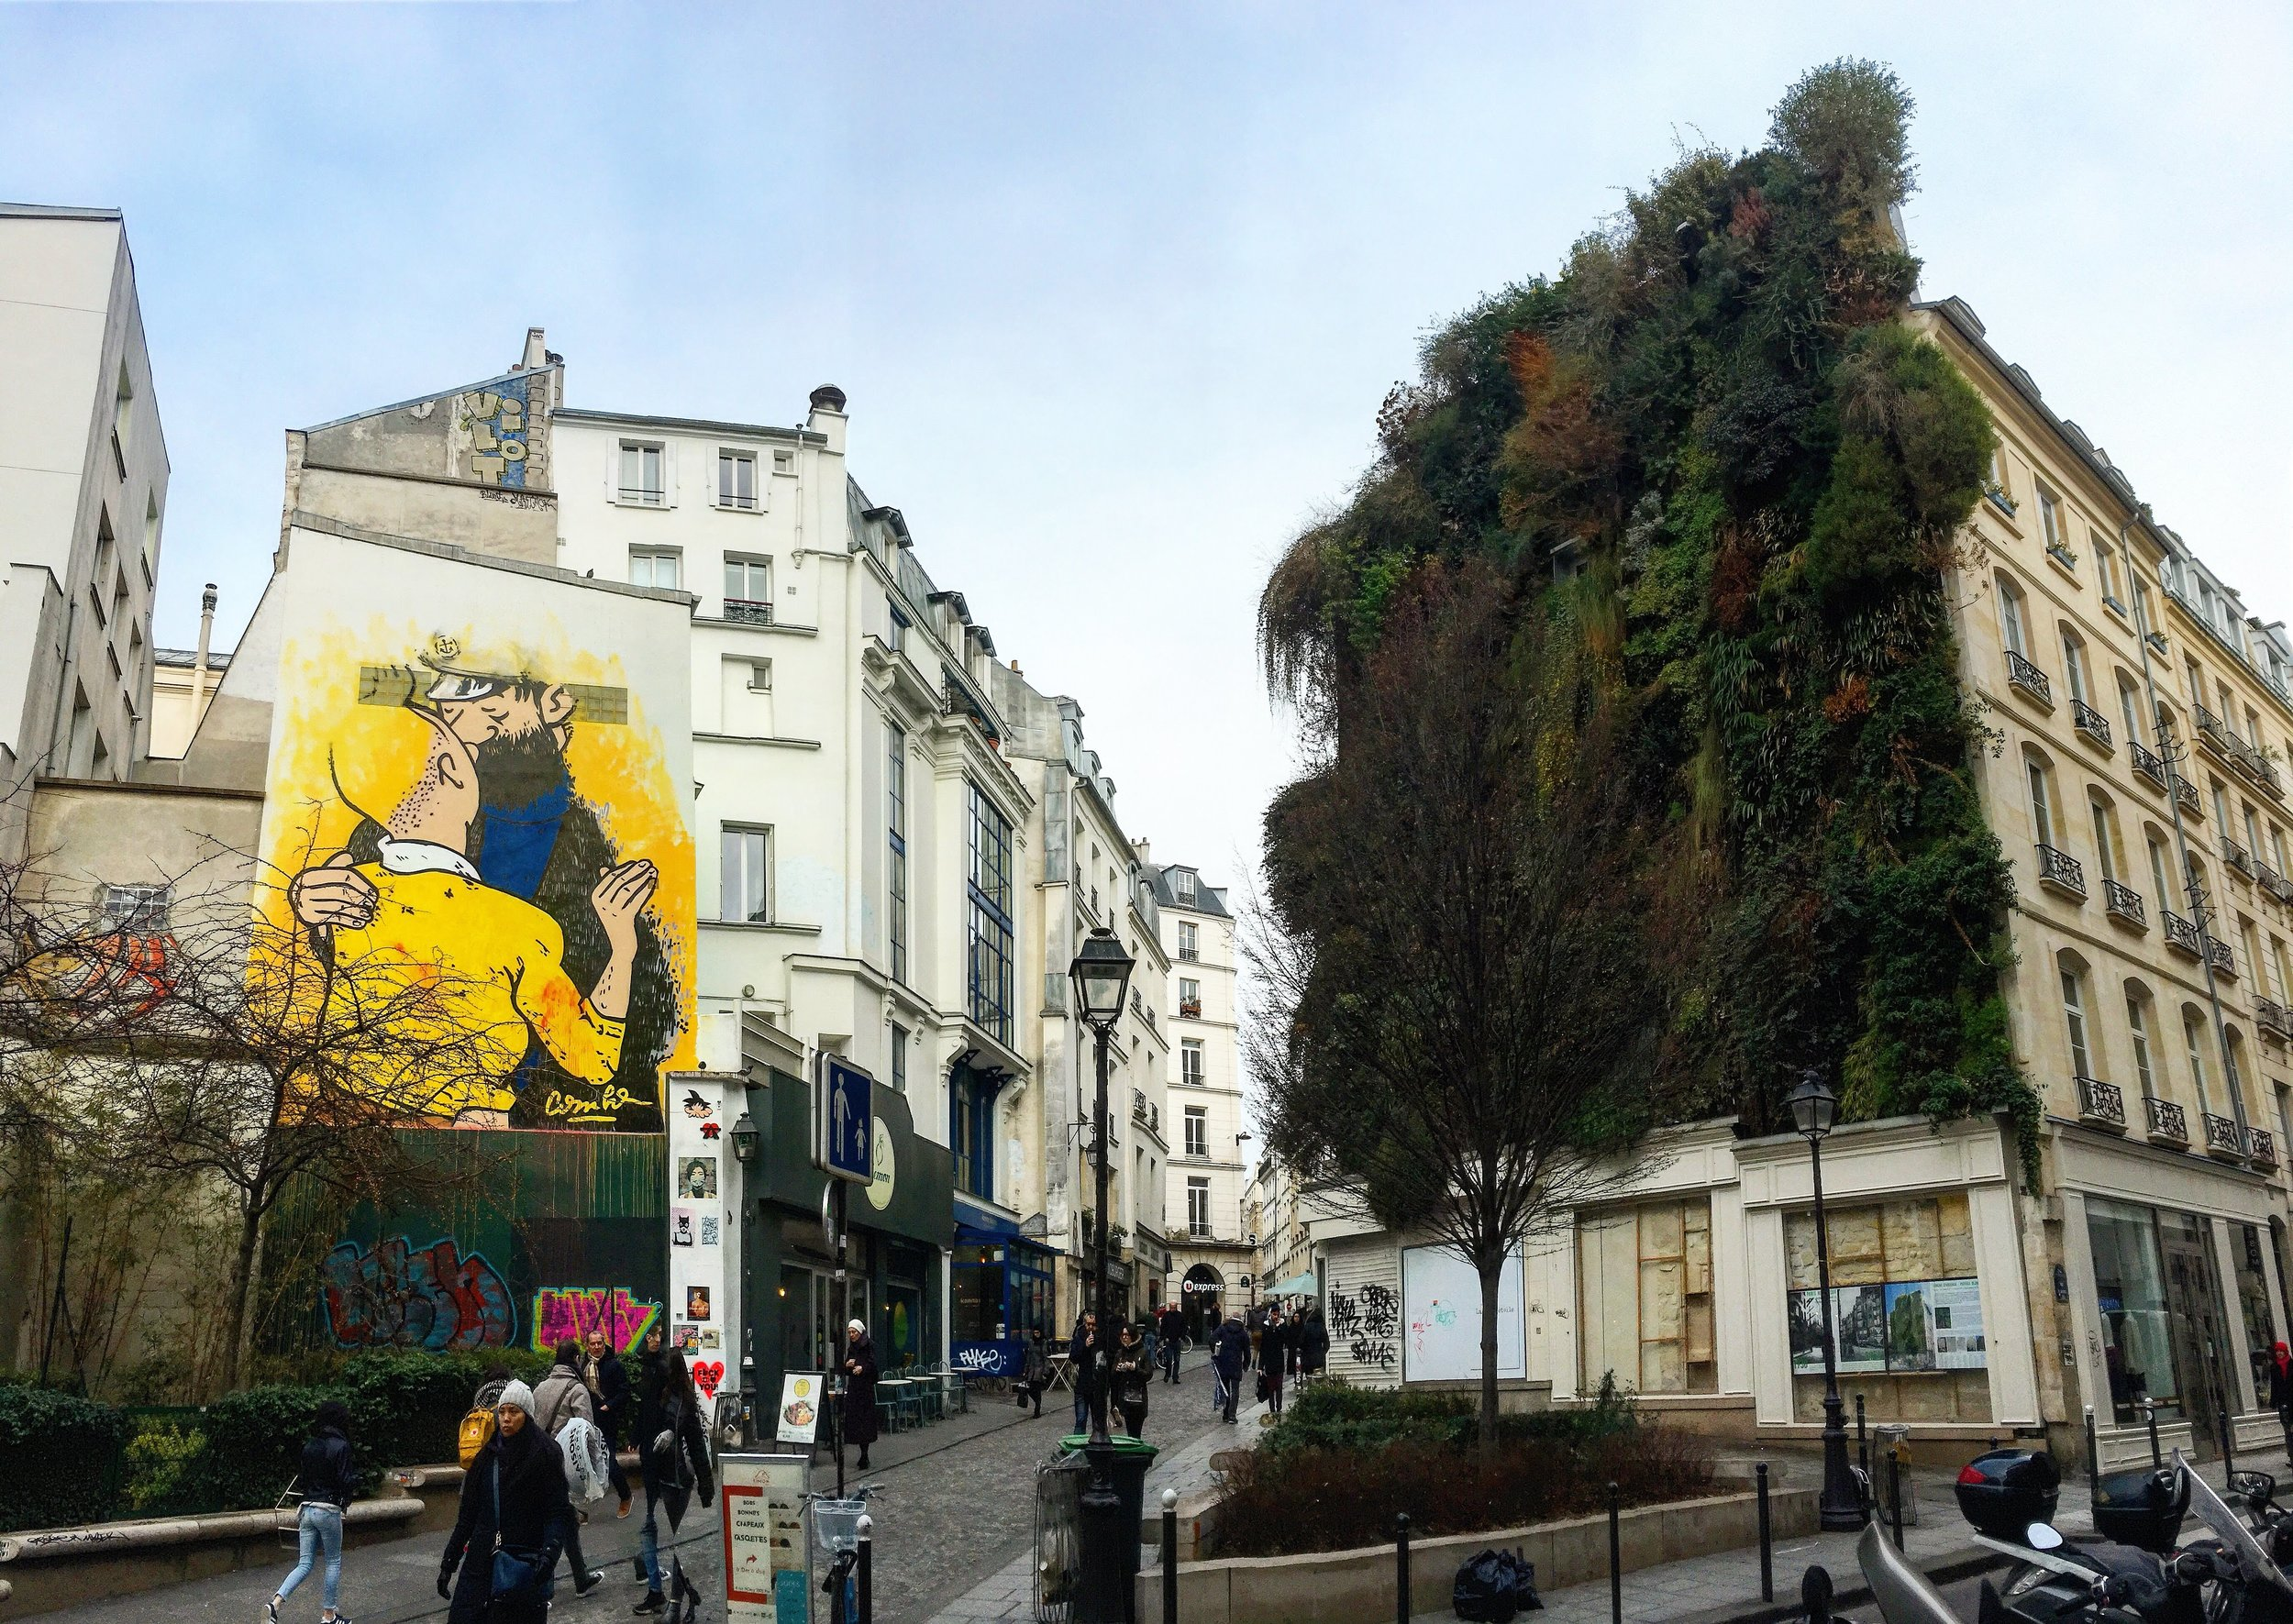 At the intersection of Rue des Petits Carreaux and Rue d'Aboukir